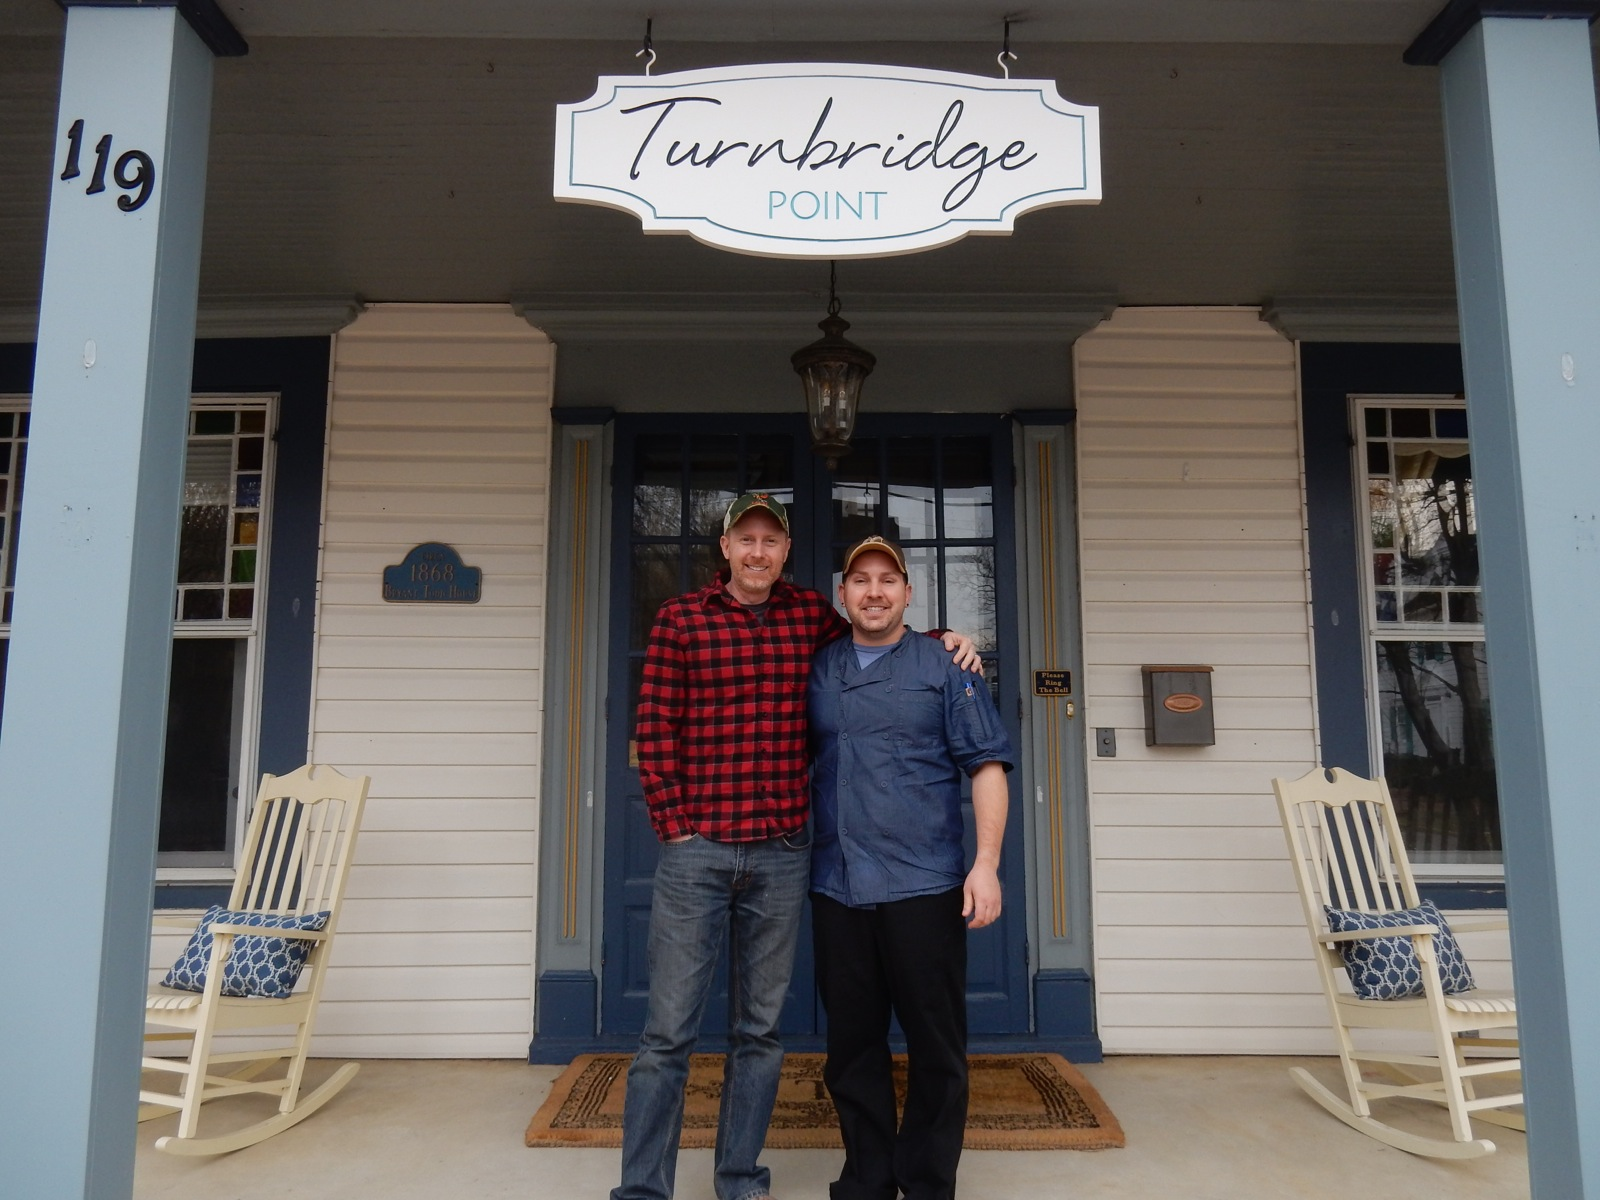 Turnbridge Point owners Patent Attorney/decorator, Rob Griffith, and his partner, Steve Konopelski, a former Broadway dancer.